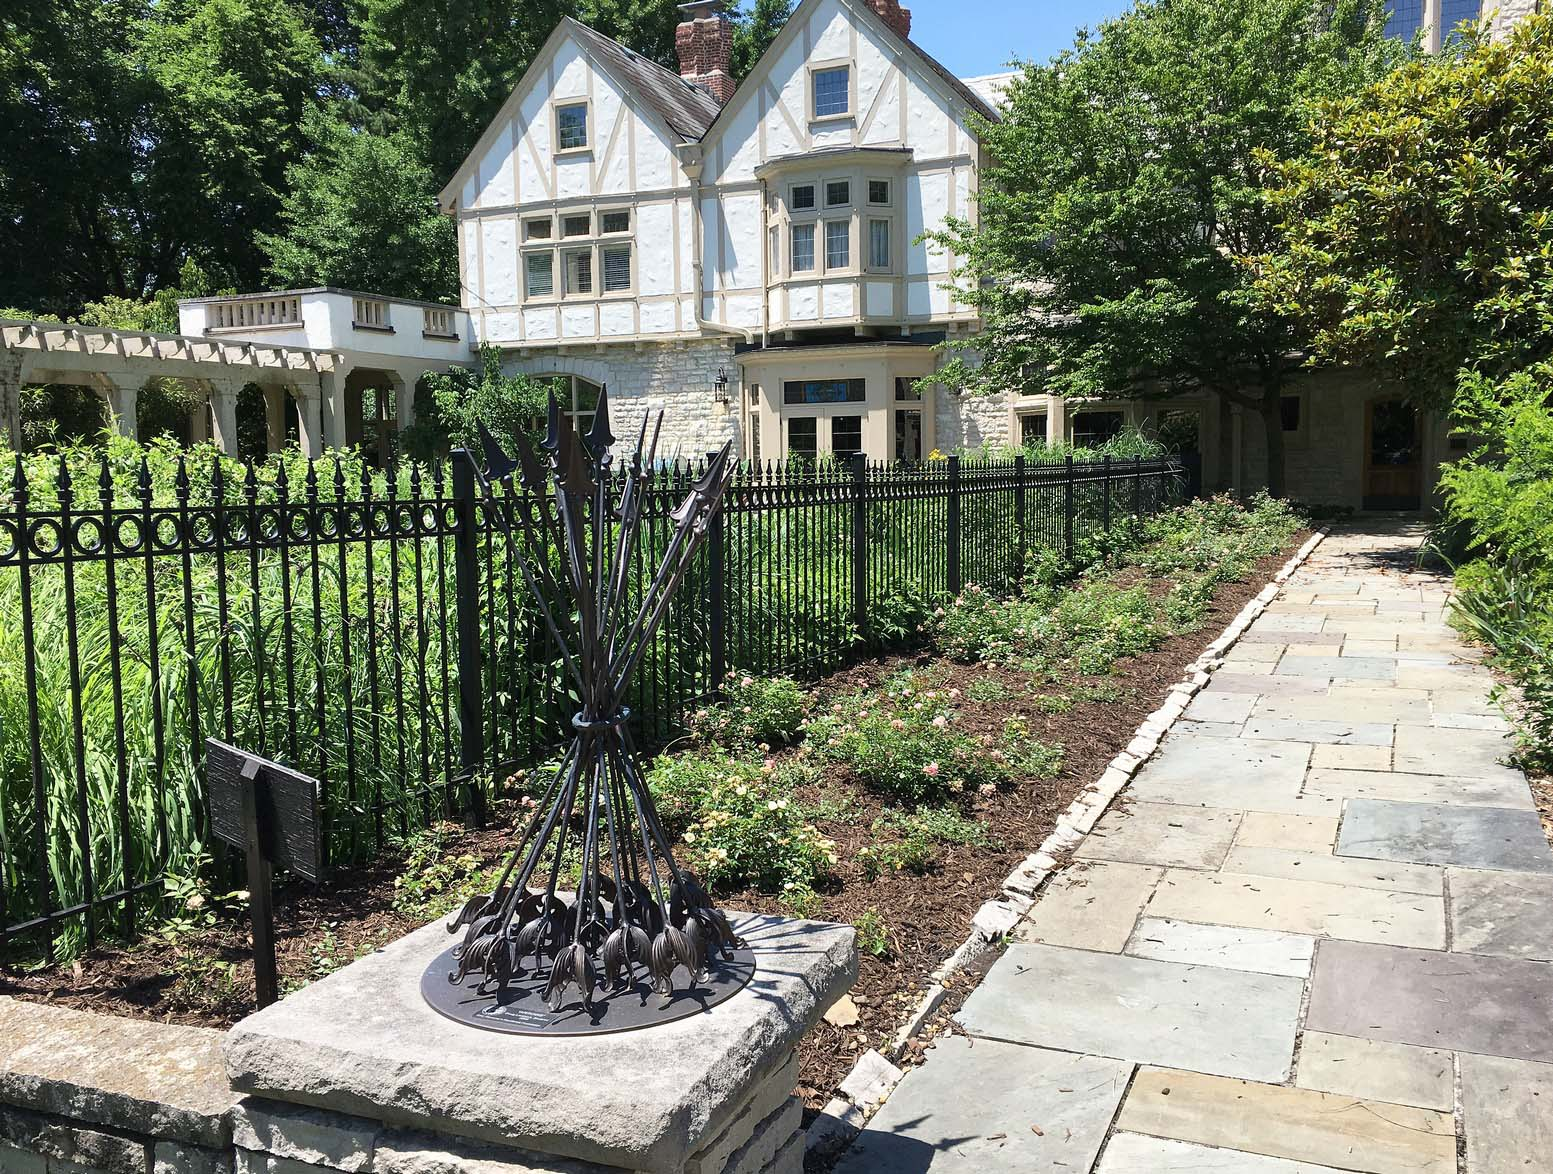 Redesigned rose garden at the Governor's mansion